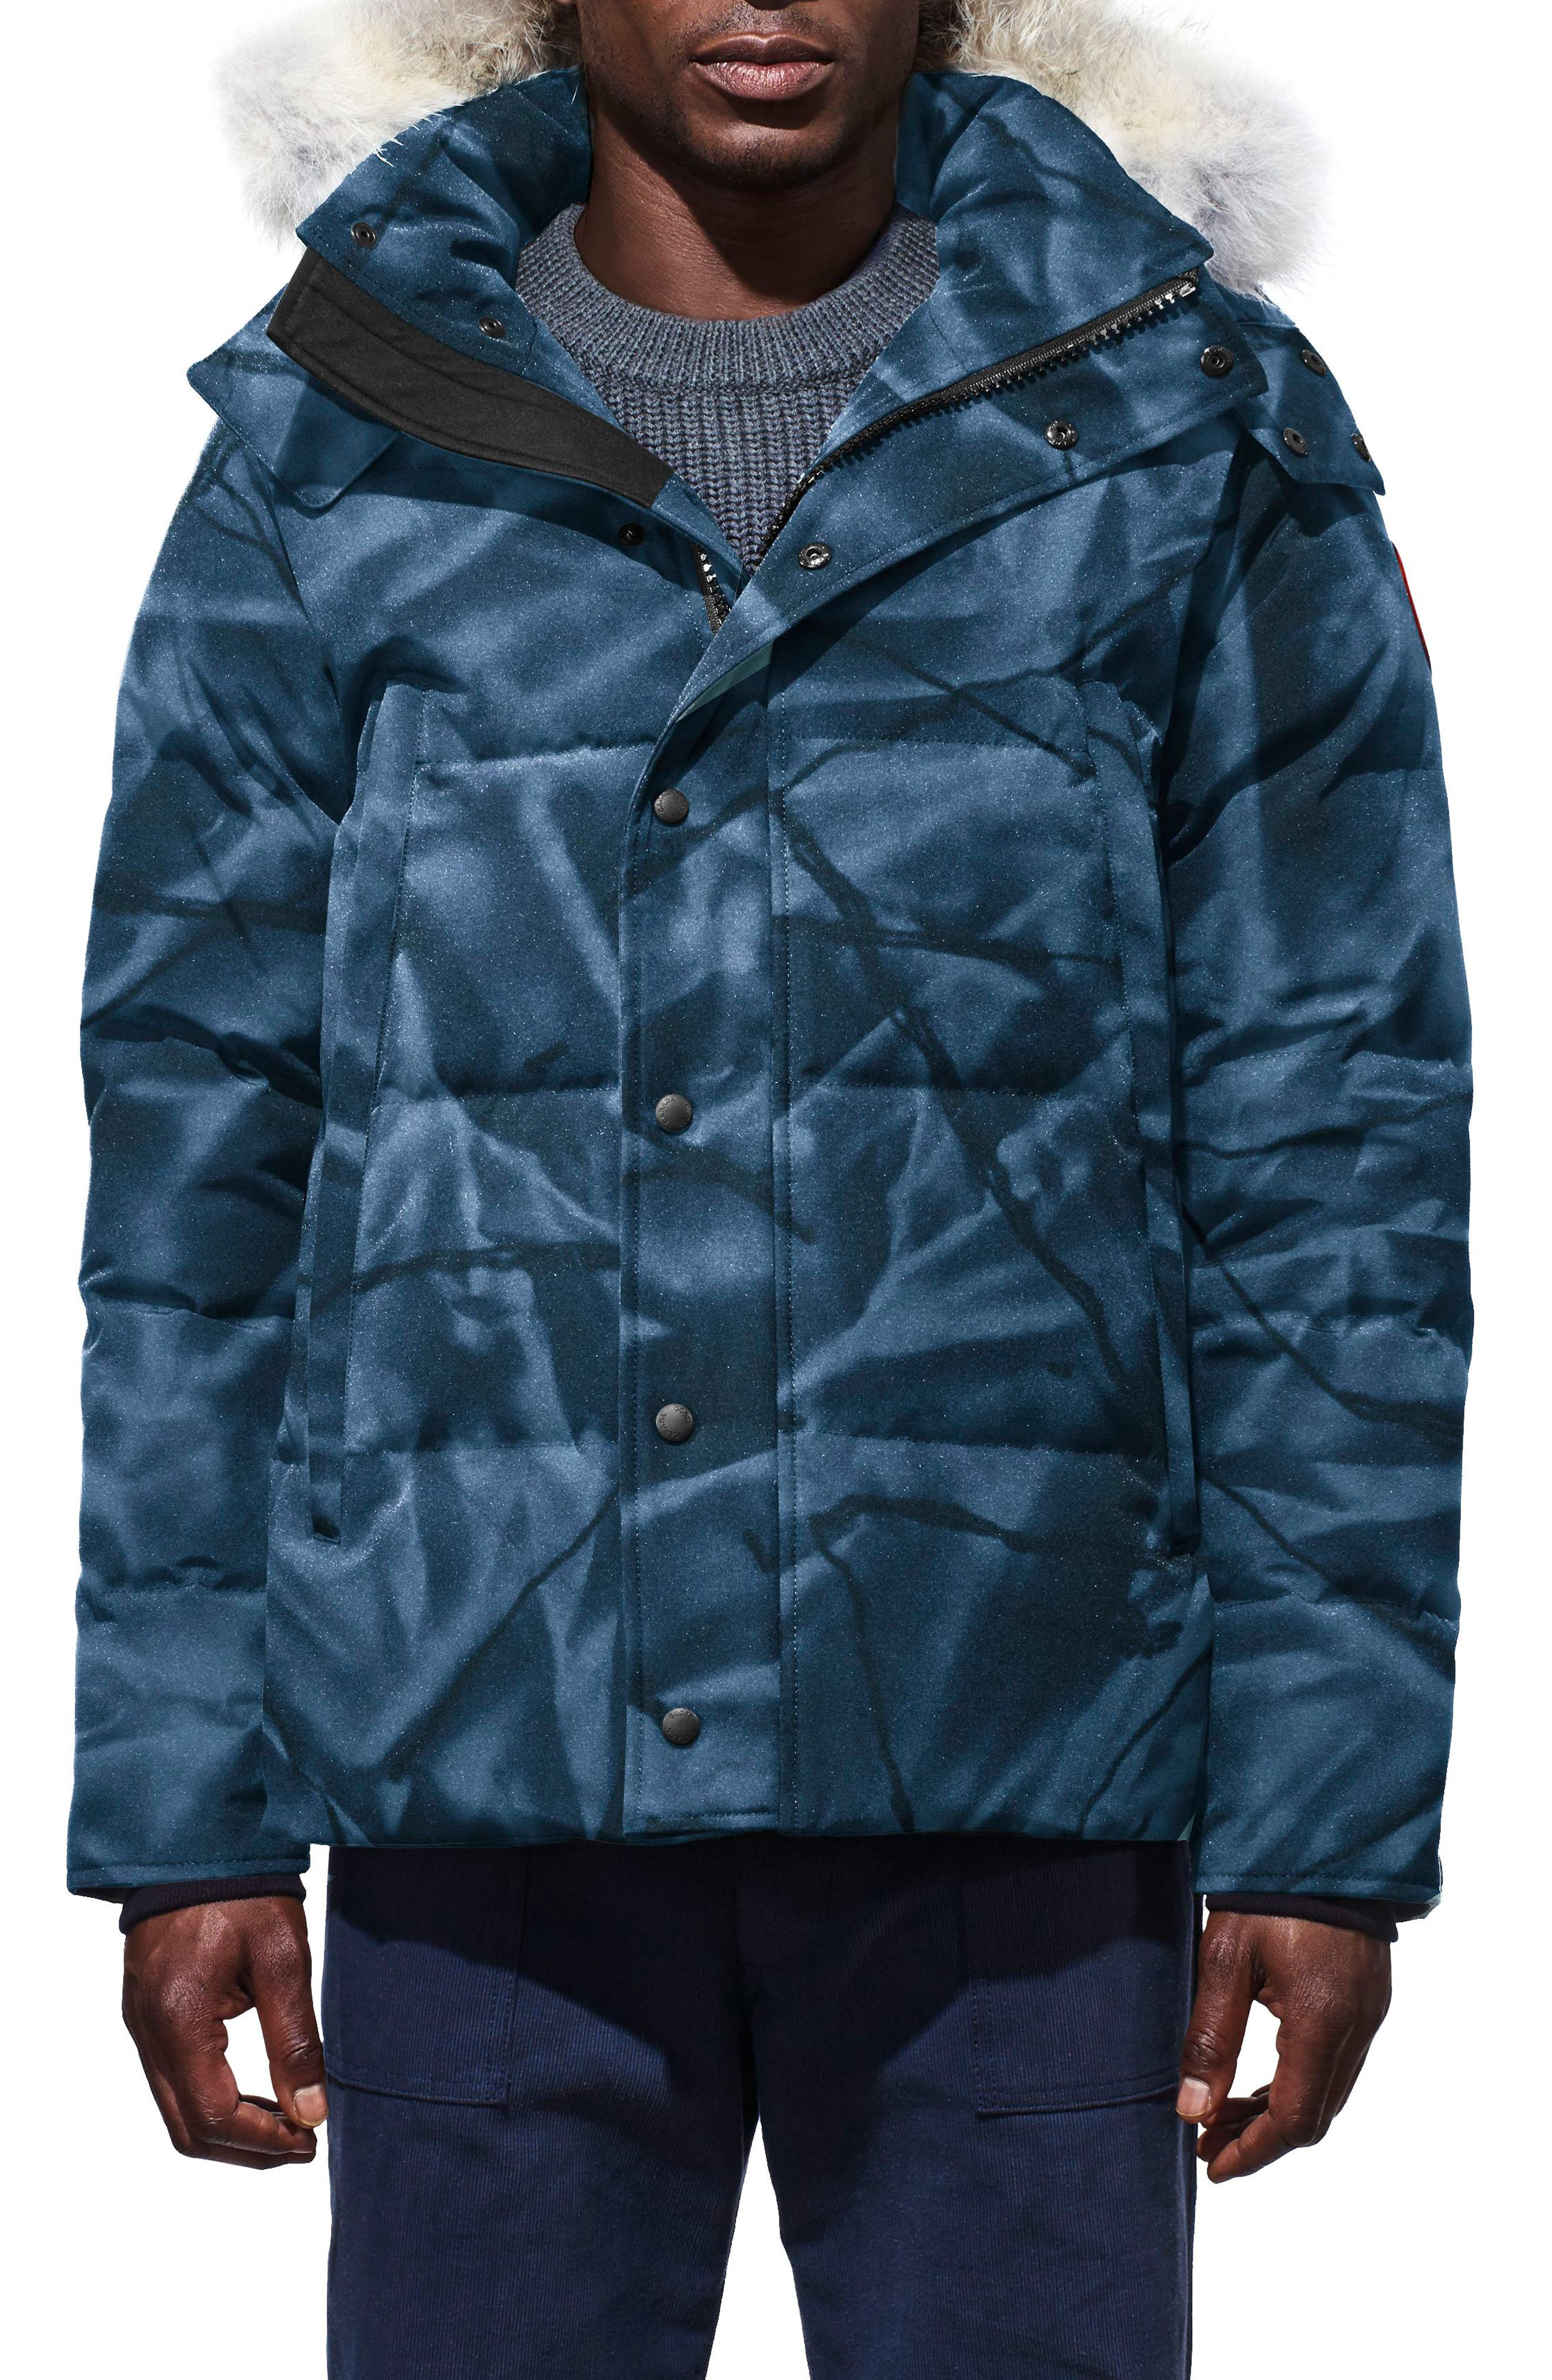 Wyndham Slim Fit Genuine Coyote Fur Trim Down Jacket,                             Main thumbnail 1, color,                             BLUE ABSTRACT CAMO